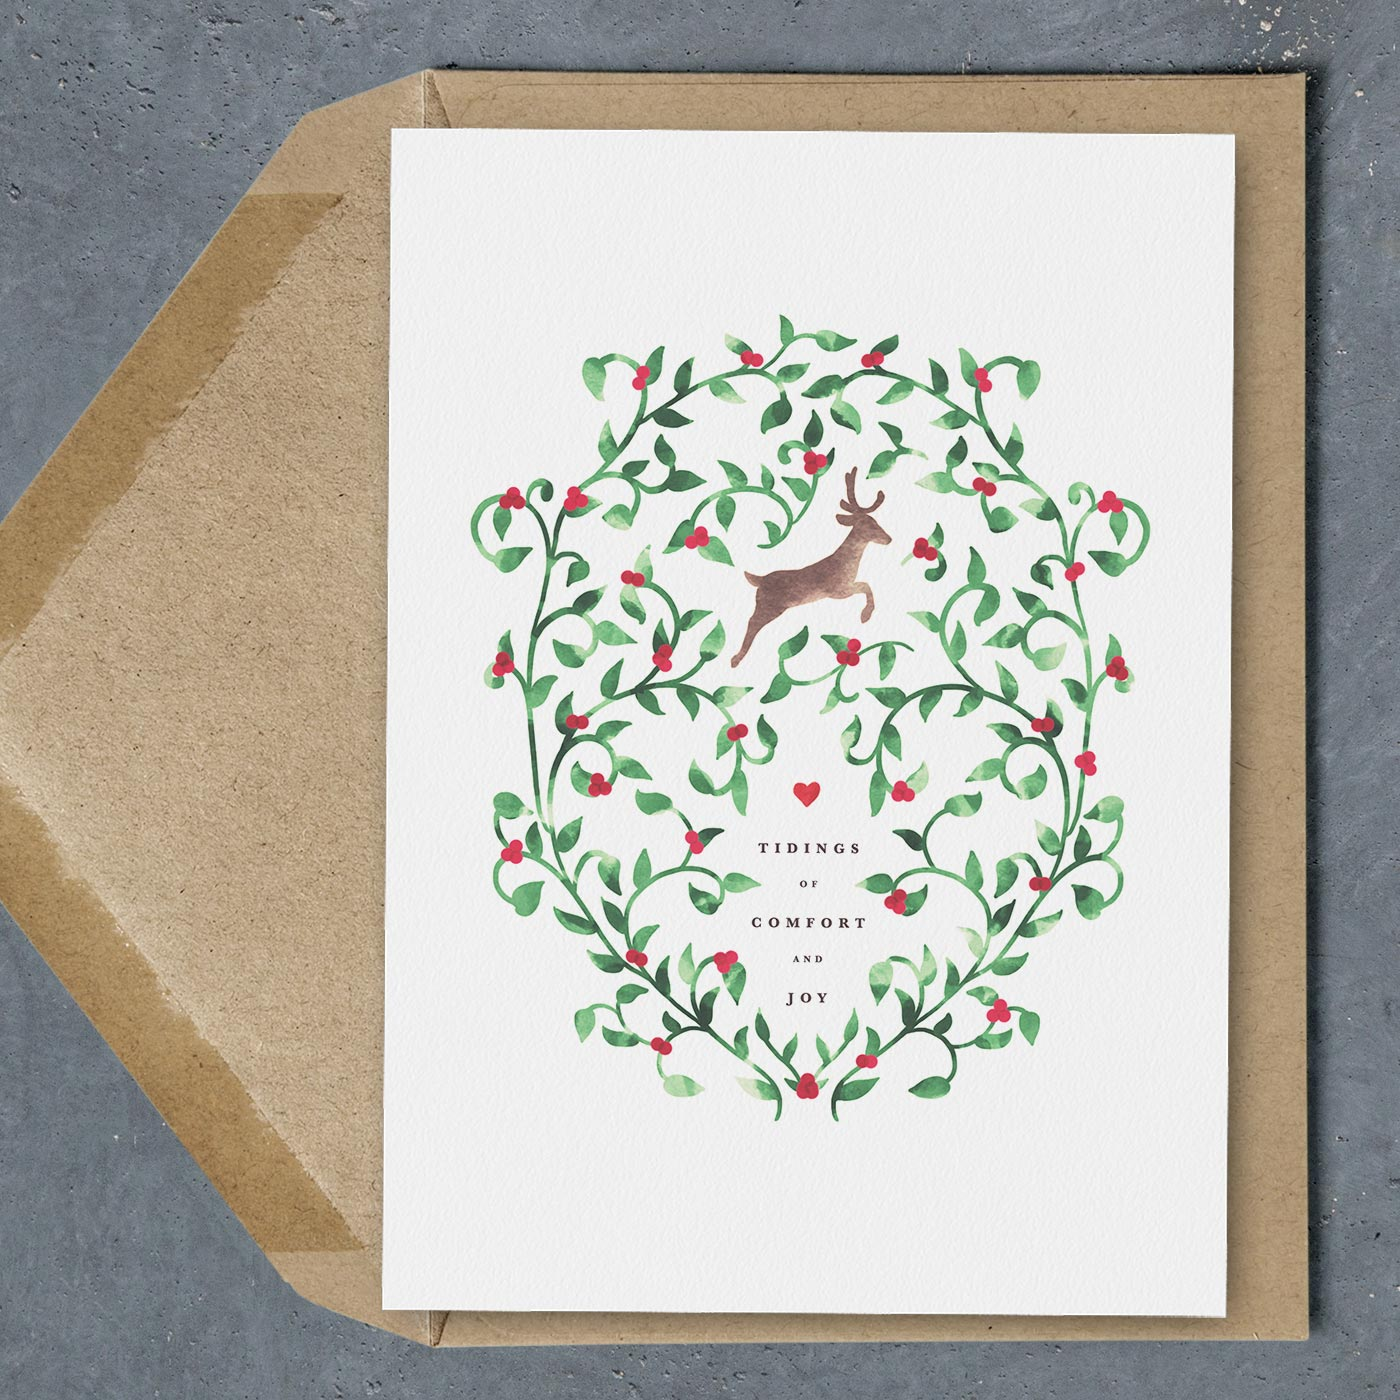 Free Printable Christmas Card - Tidings of Comfort and Joy with Leaping Deer and Watercolor Greenery with Red Berries